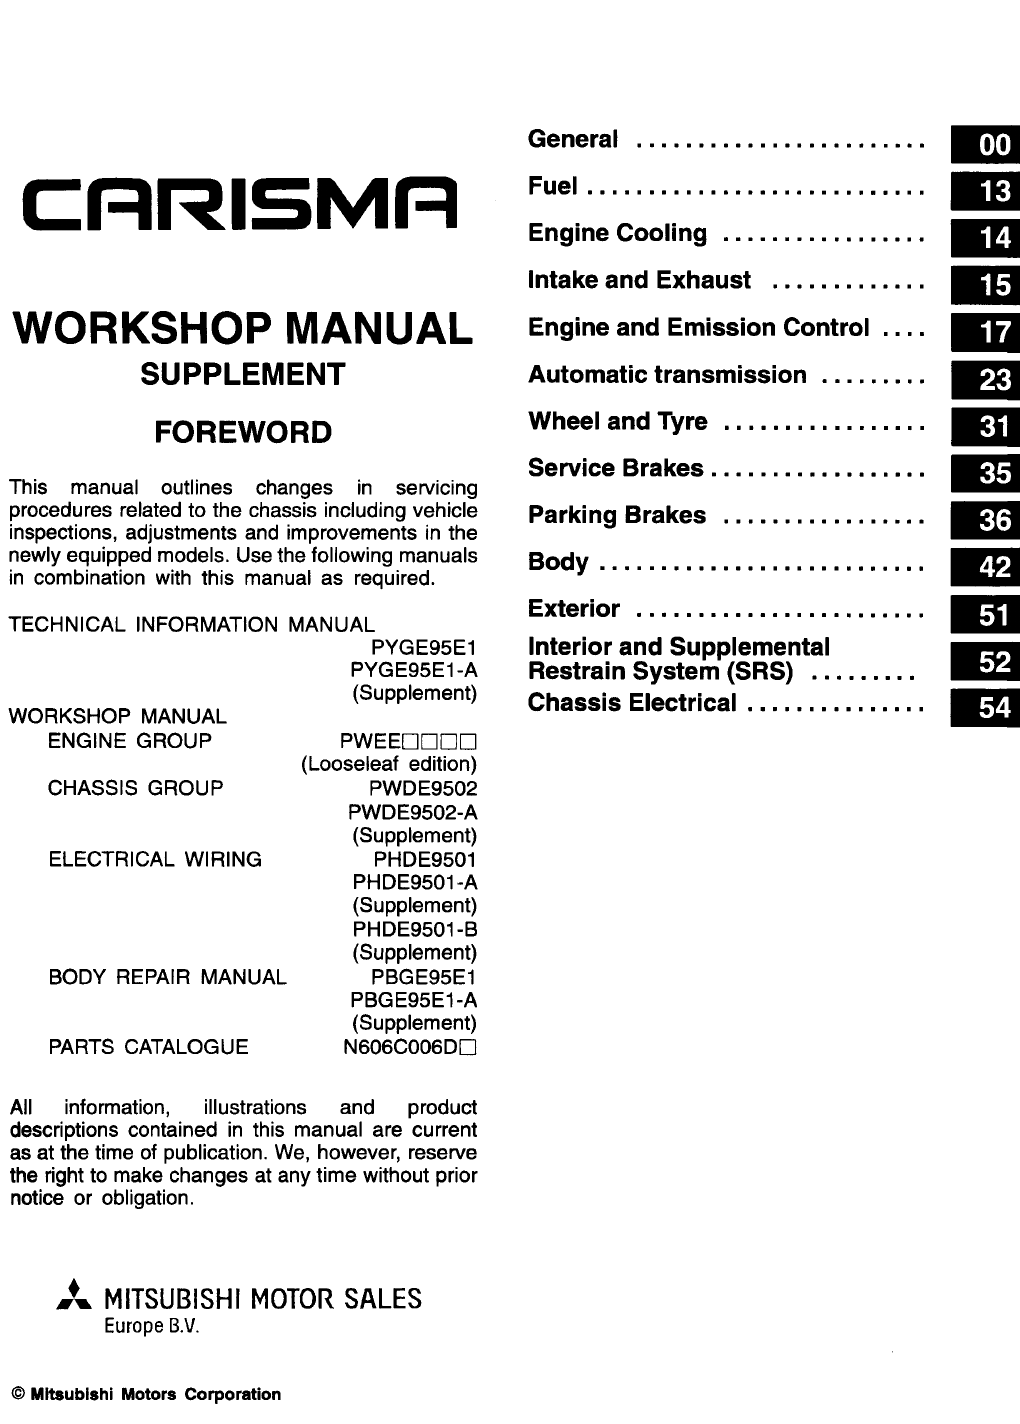 mitsubishi carisma 1998 misc document workshop manual supplement pdf rh manuals co mitsubishi carisma service manual free download mitsubishi carisma service manual free